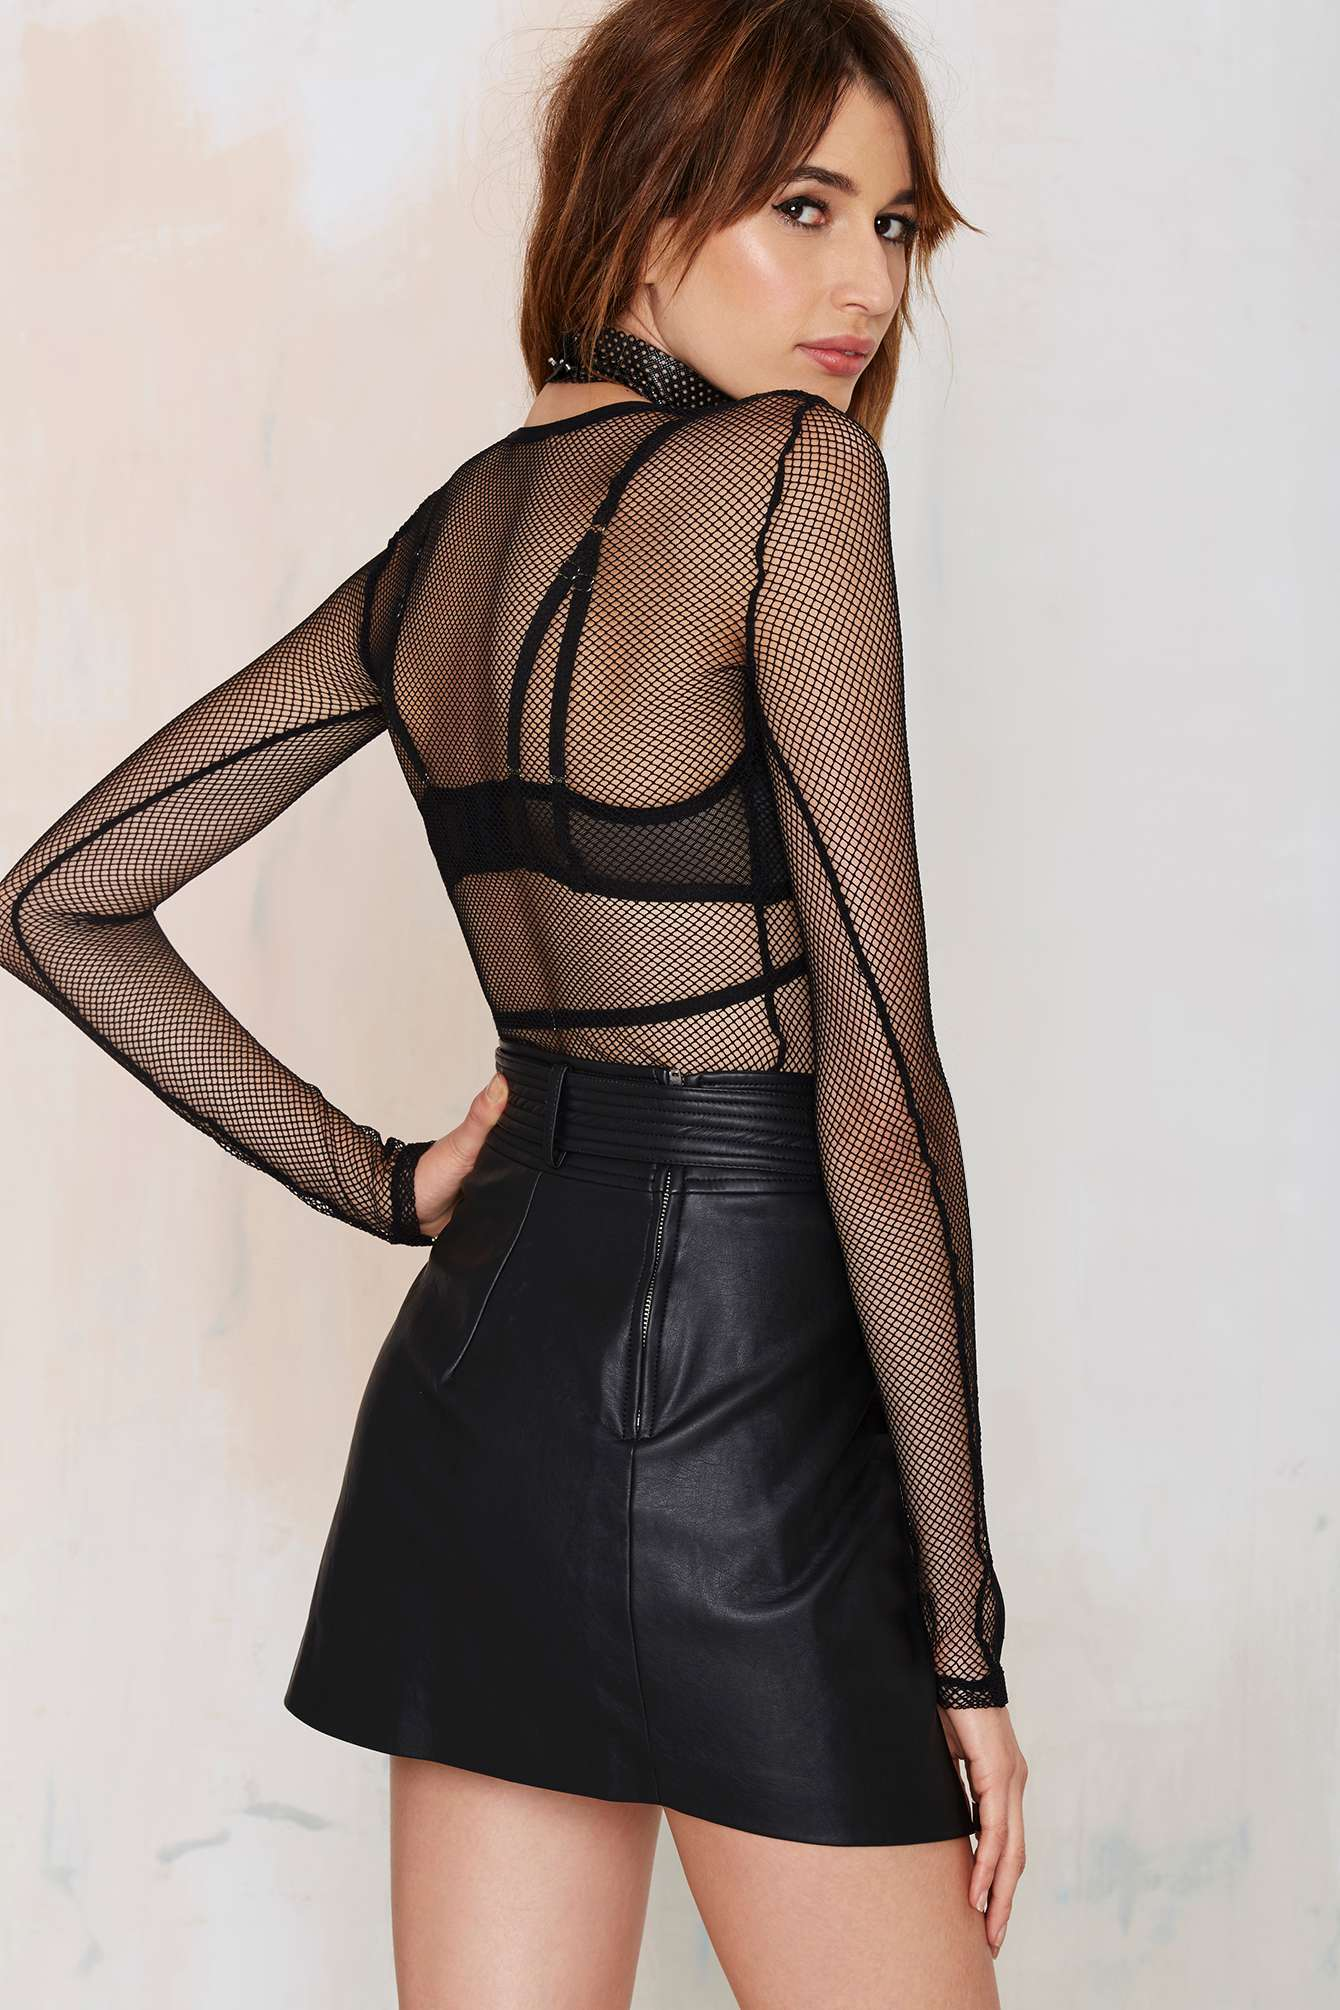 Kenza Fourati photoshoot for Nasty Gal Collection